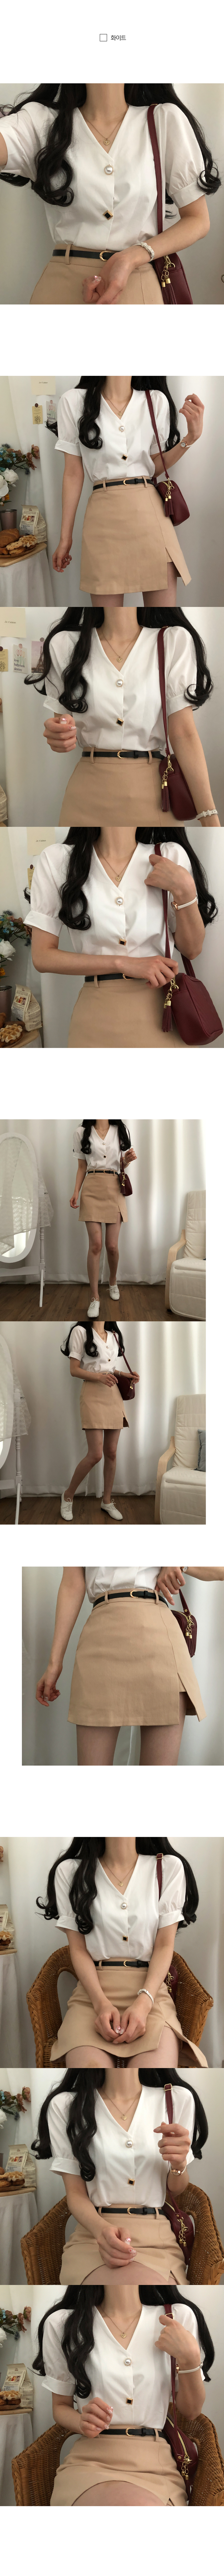 Parts jewelry short sleeve blouse